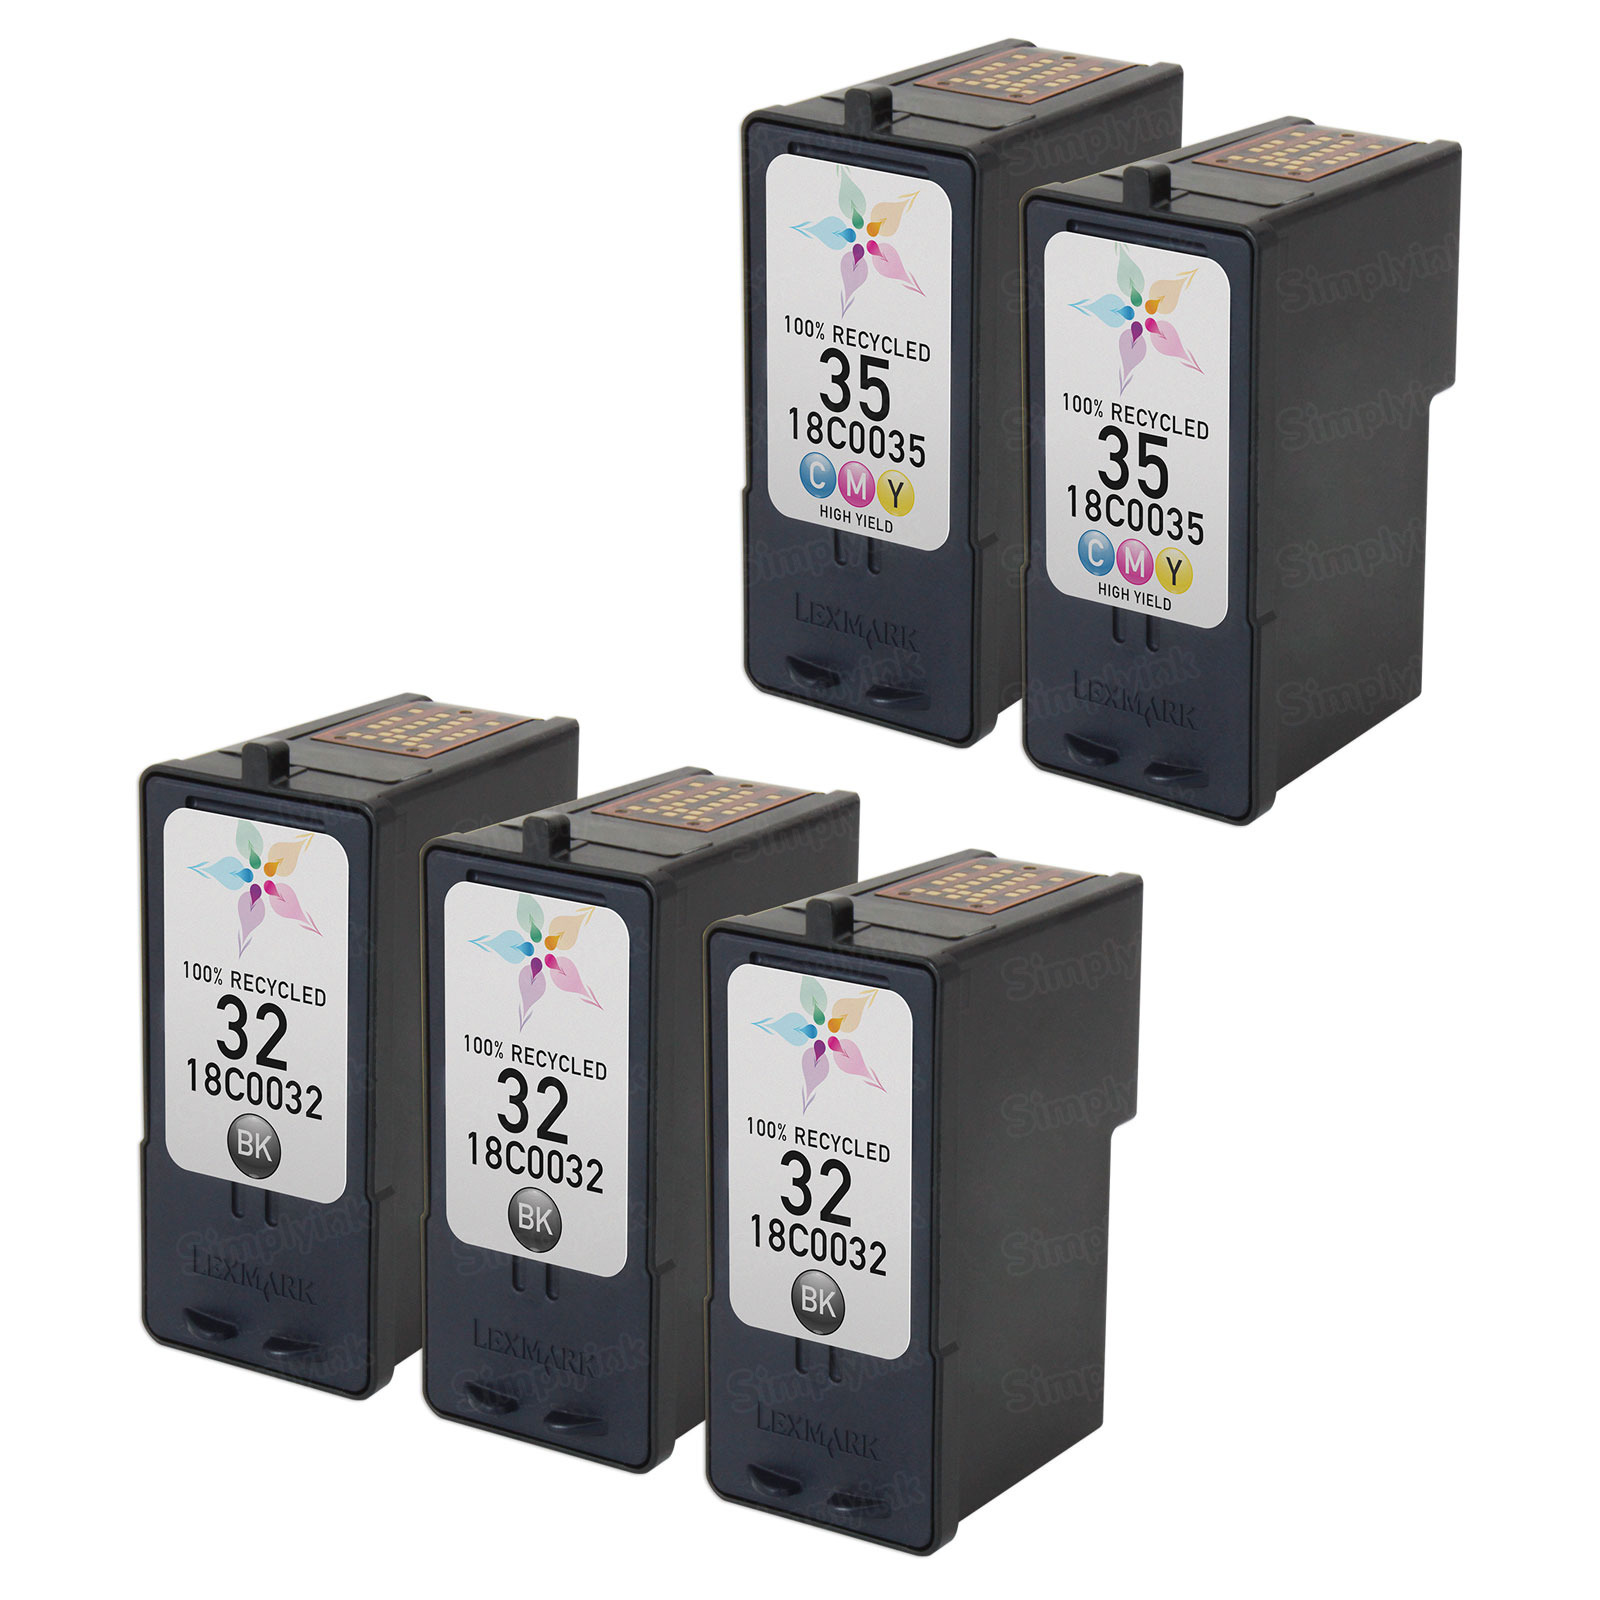 Inkjet Supplies for Lexmark Printers - Remanufactured Bulk Set of 5 Ink Cartridges 3 Black Lexmark 32 (18C0032) and 2 Color Lexmark 35 (18C0035)